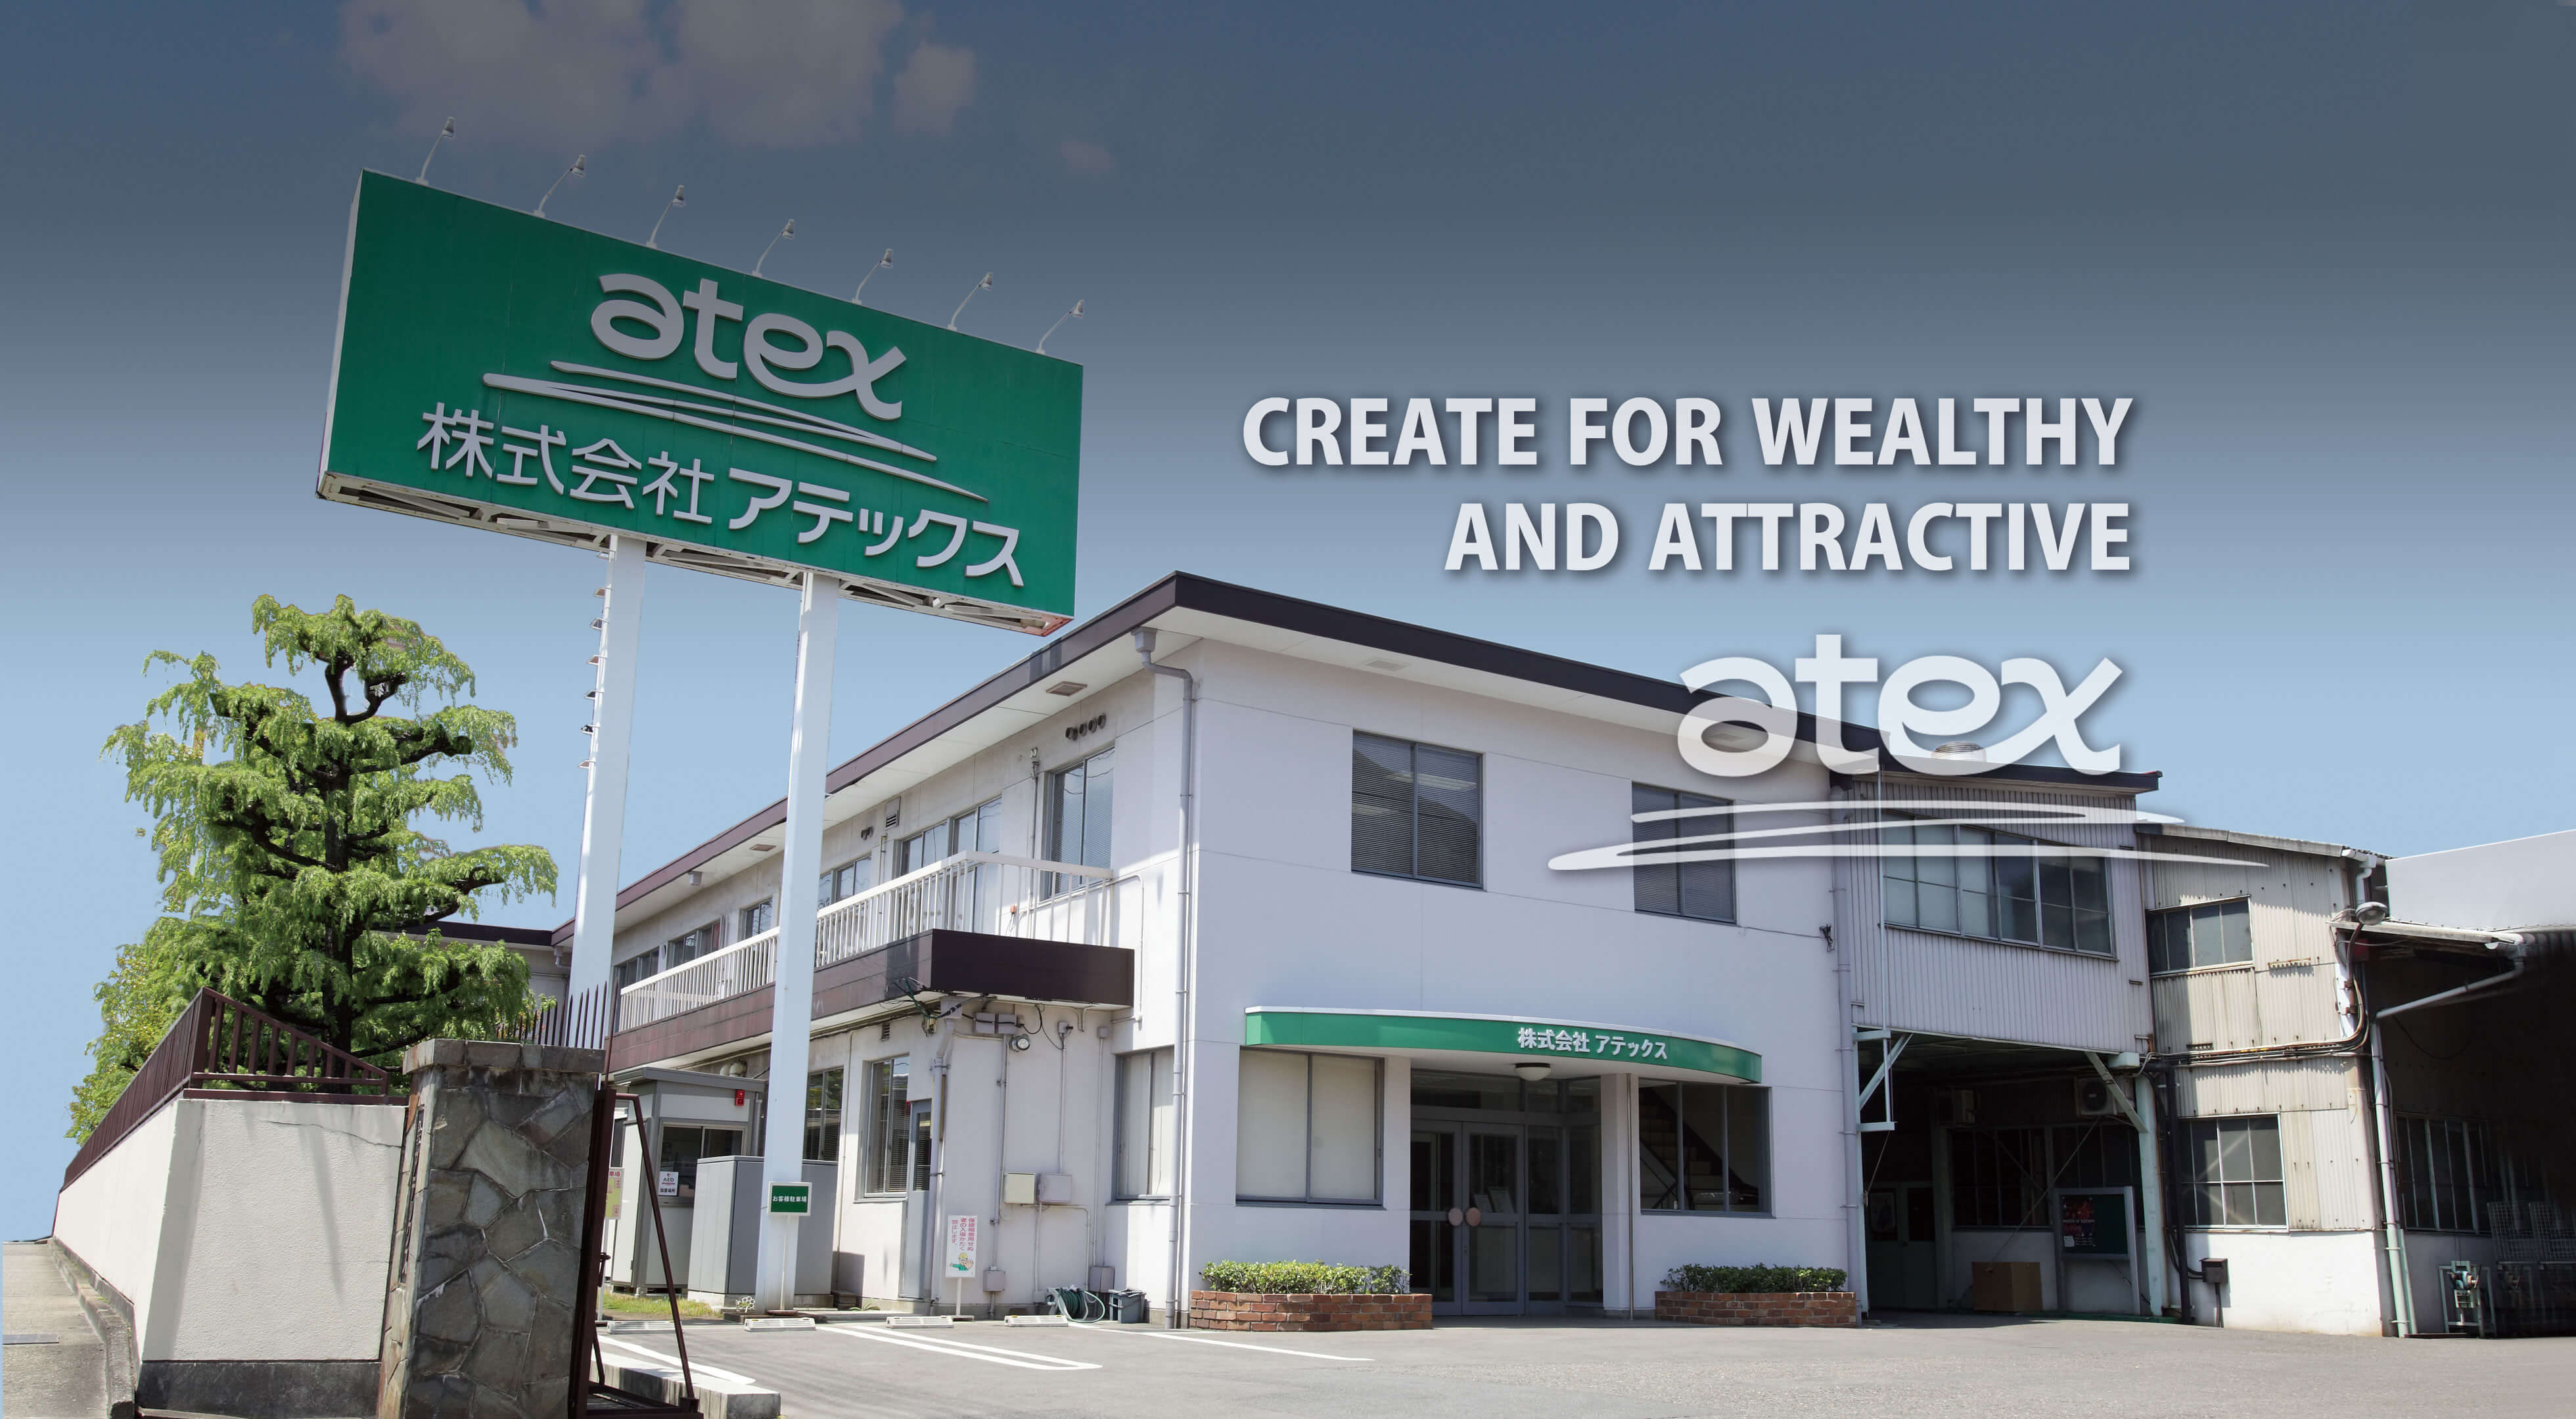 CREATE FOR WEALTHY AND ATTRACTIVE.